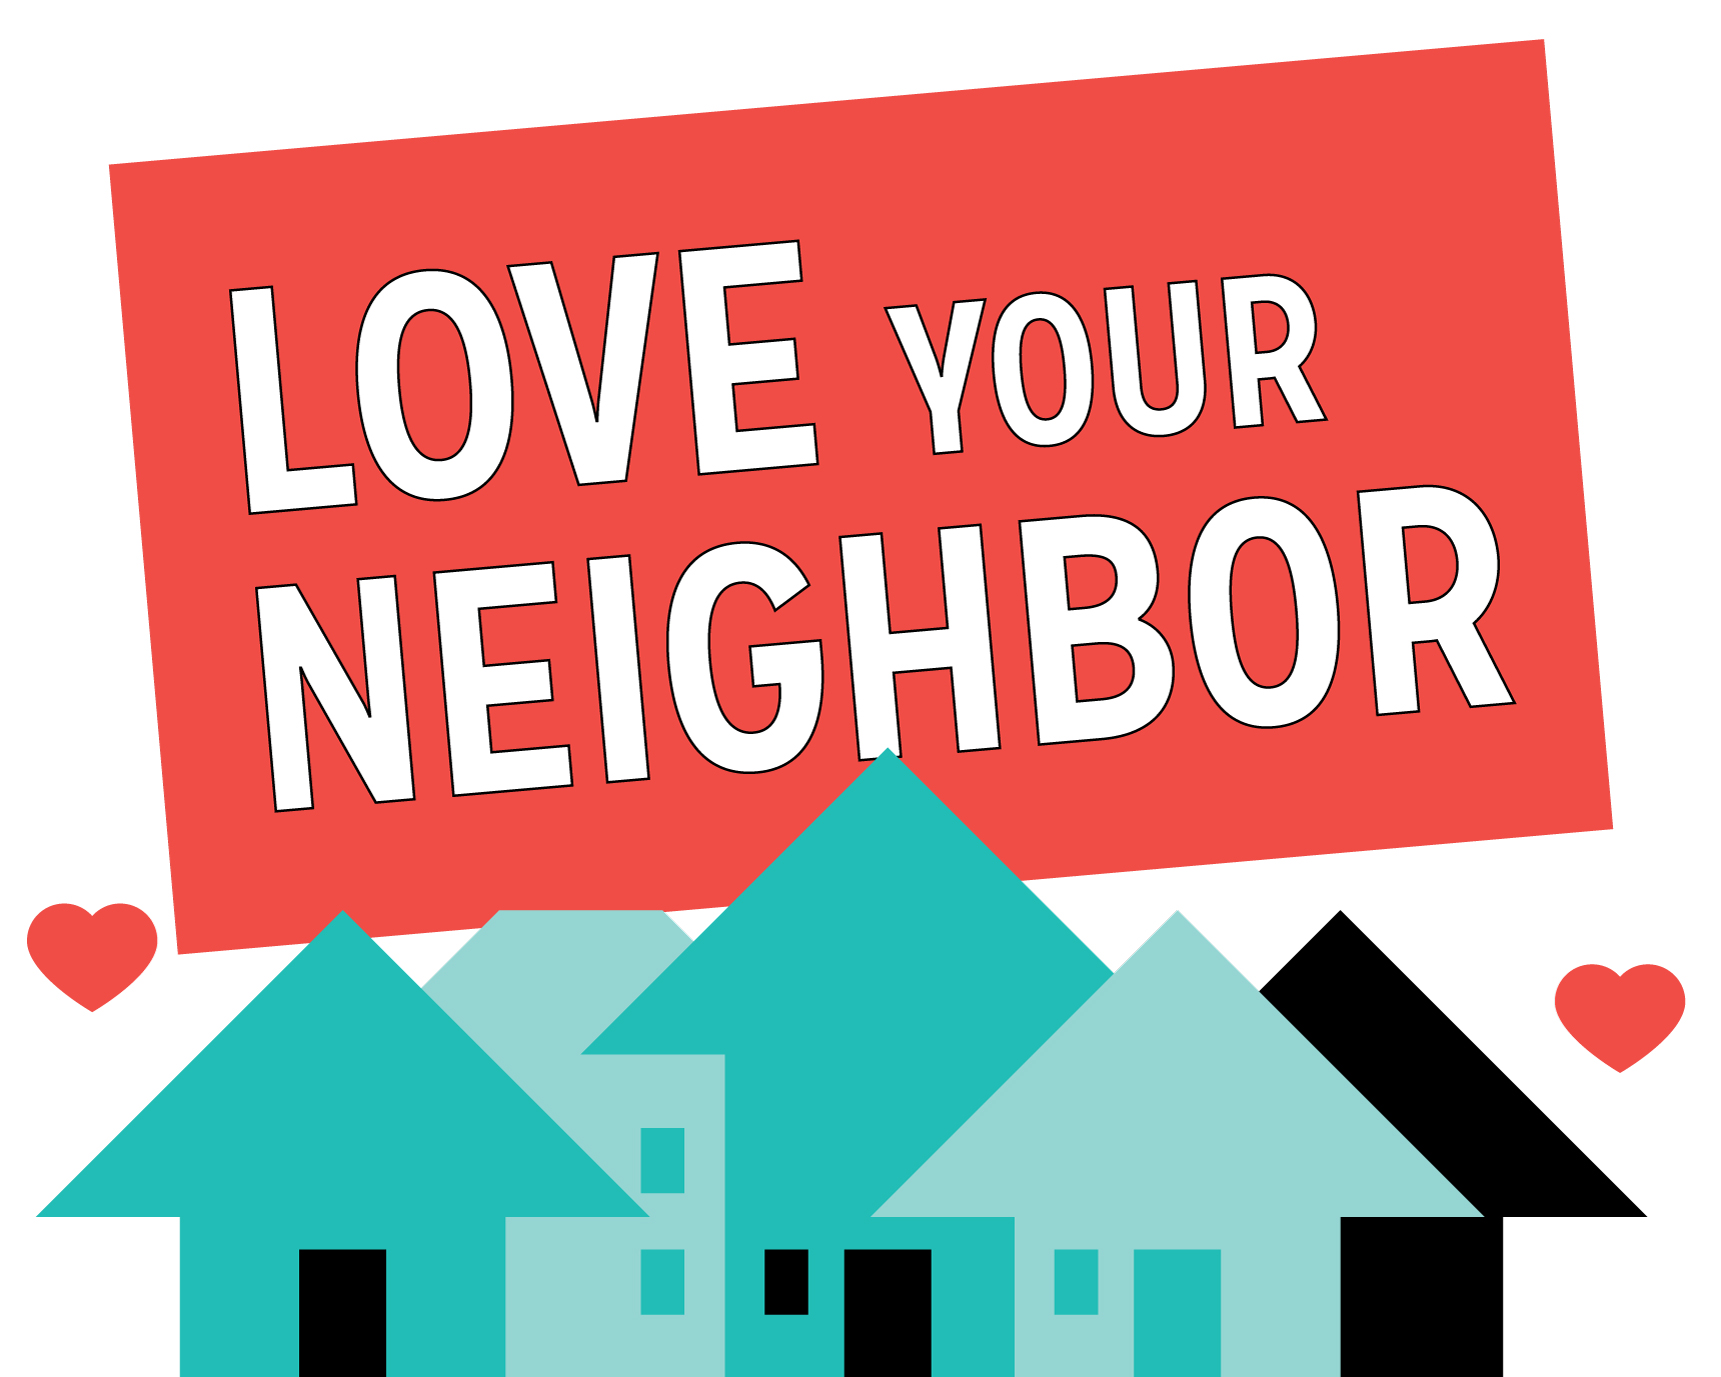 Love Your Neighbor, Part 1: The Way We Love One Another